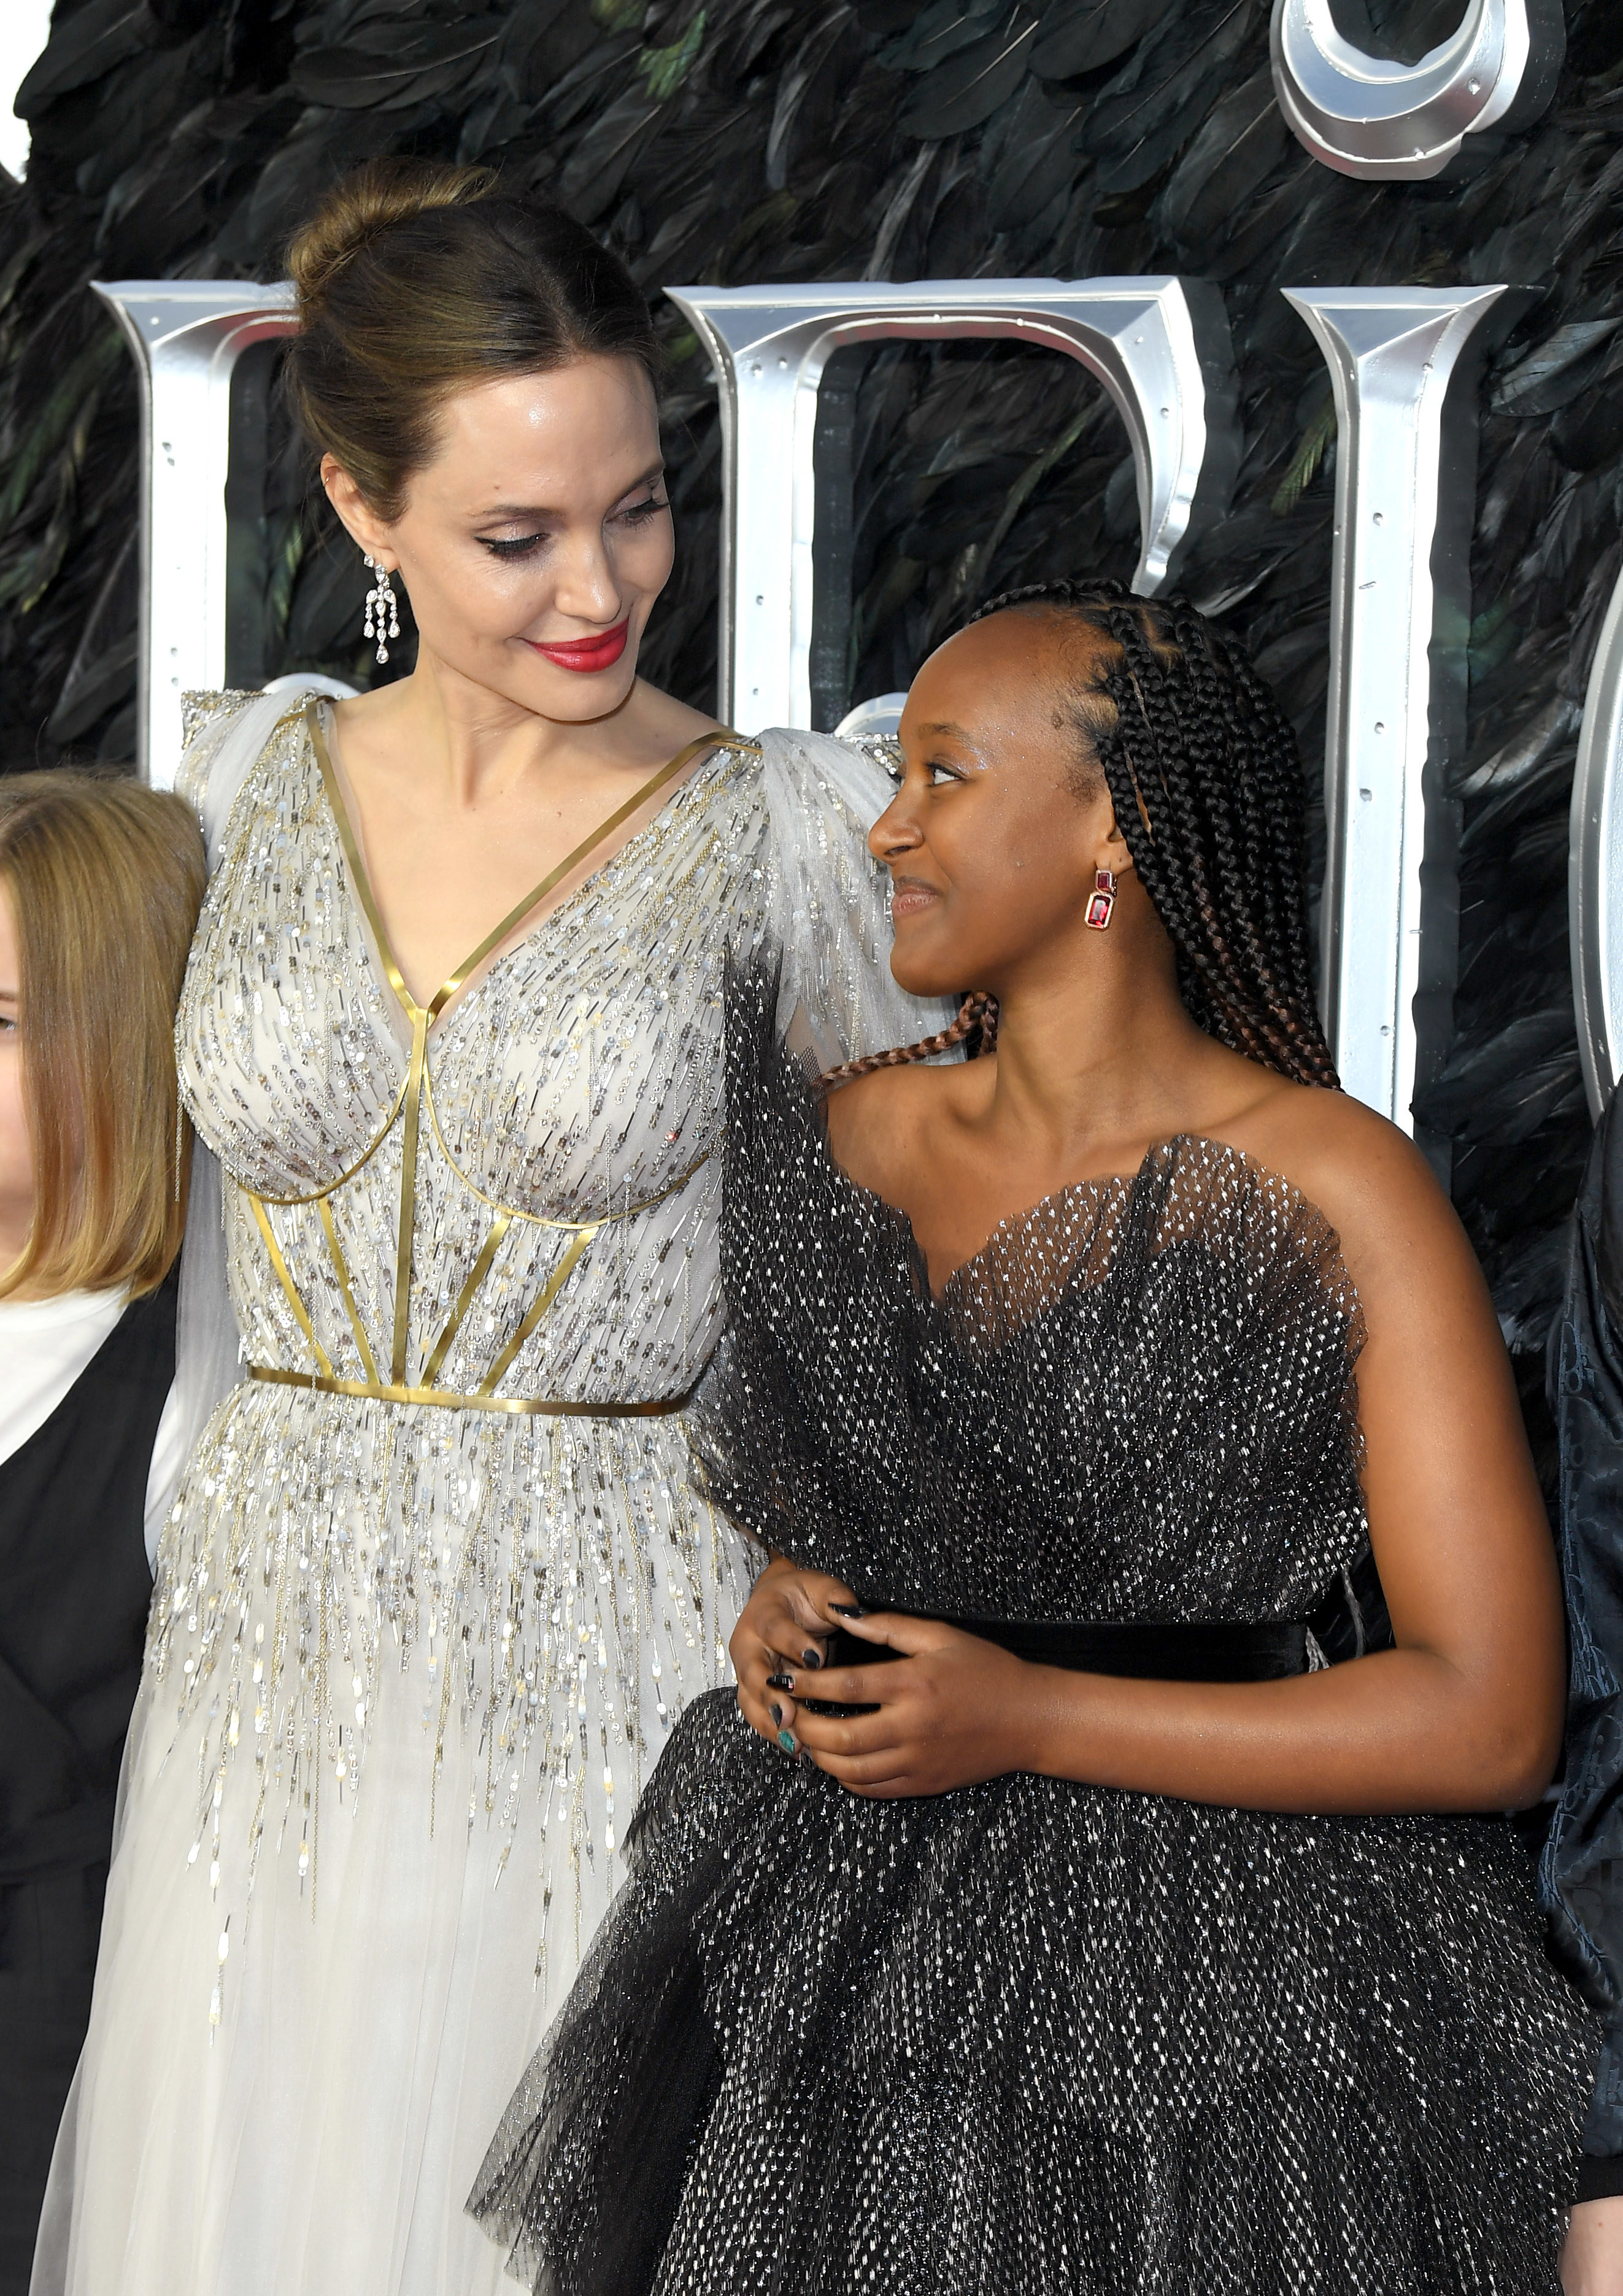 """Angelina Jolie and Zahara Marley Jolie-Pitt attend the European premiere of """"Maleficent: Mistress of Evil"""" at Odeon IMAX Waterloo on October 09, 2019, in London, England"""